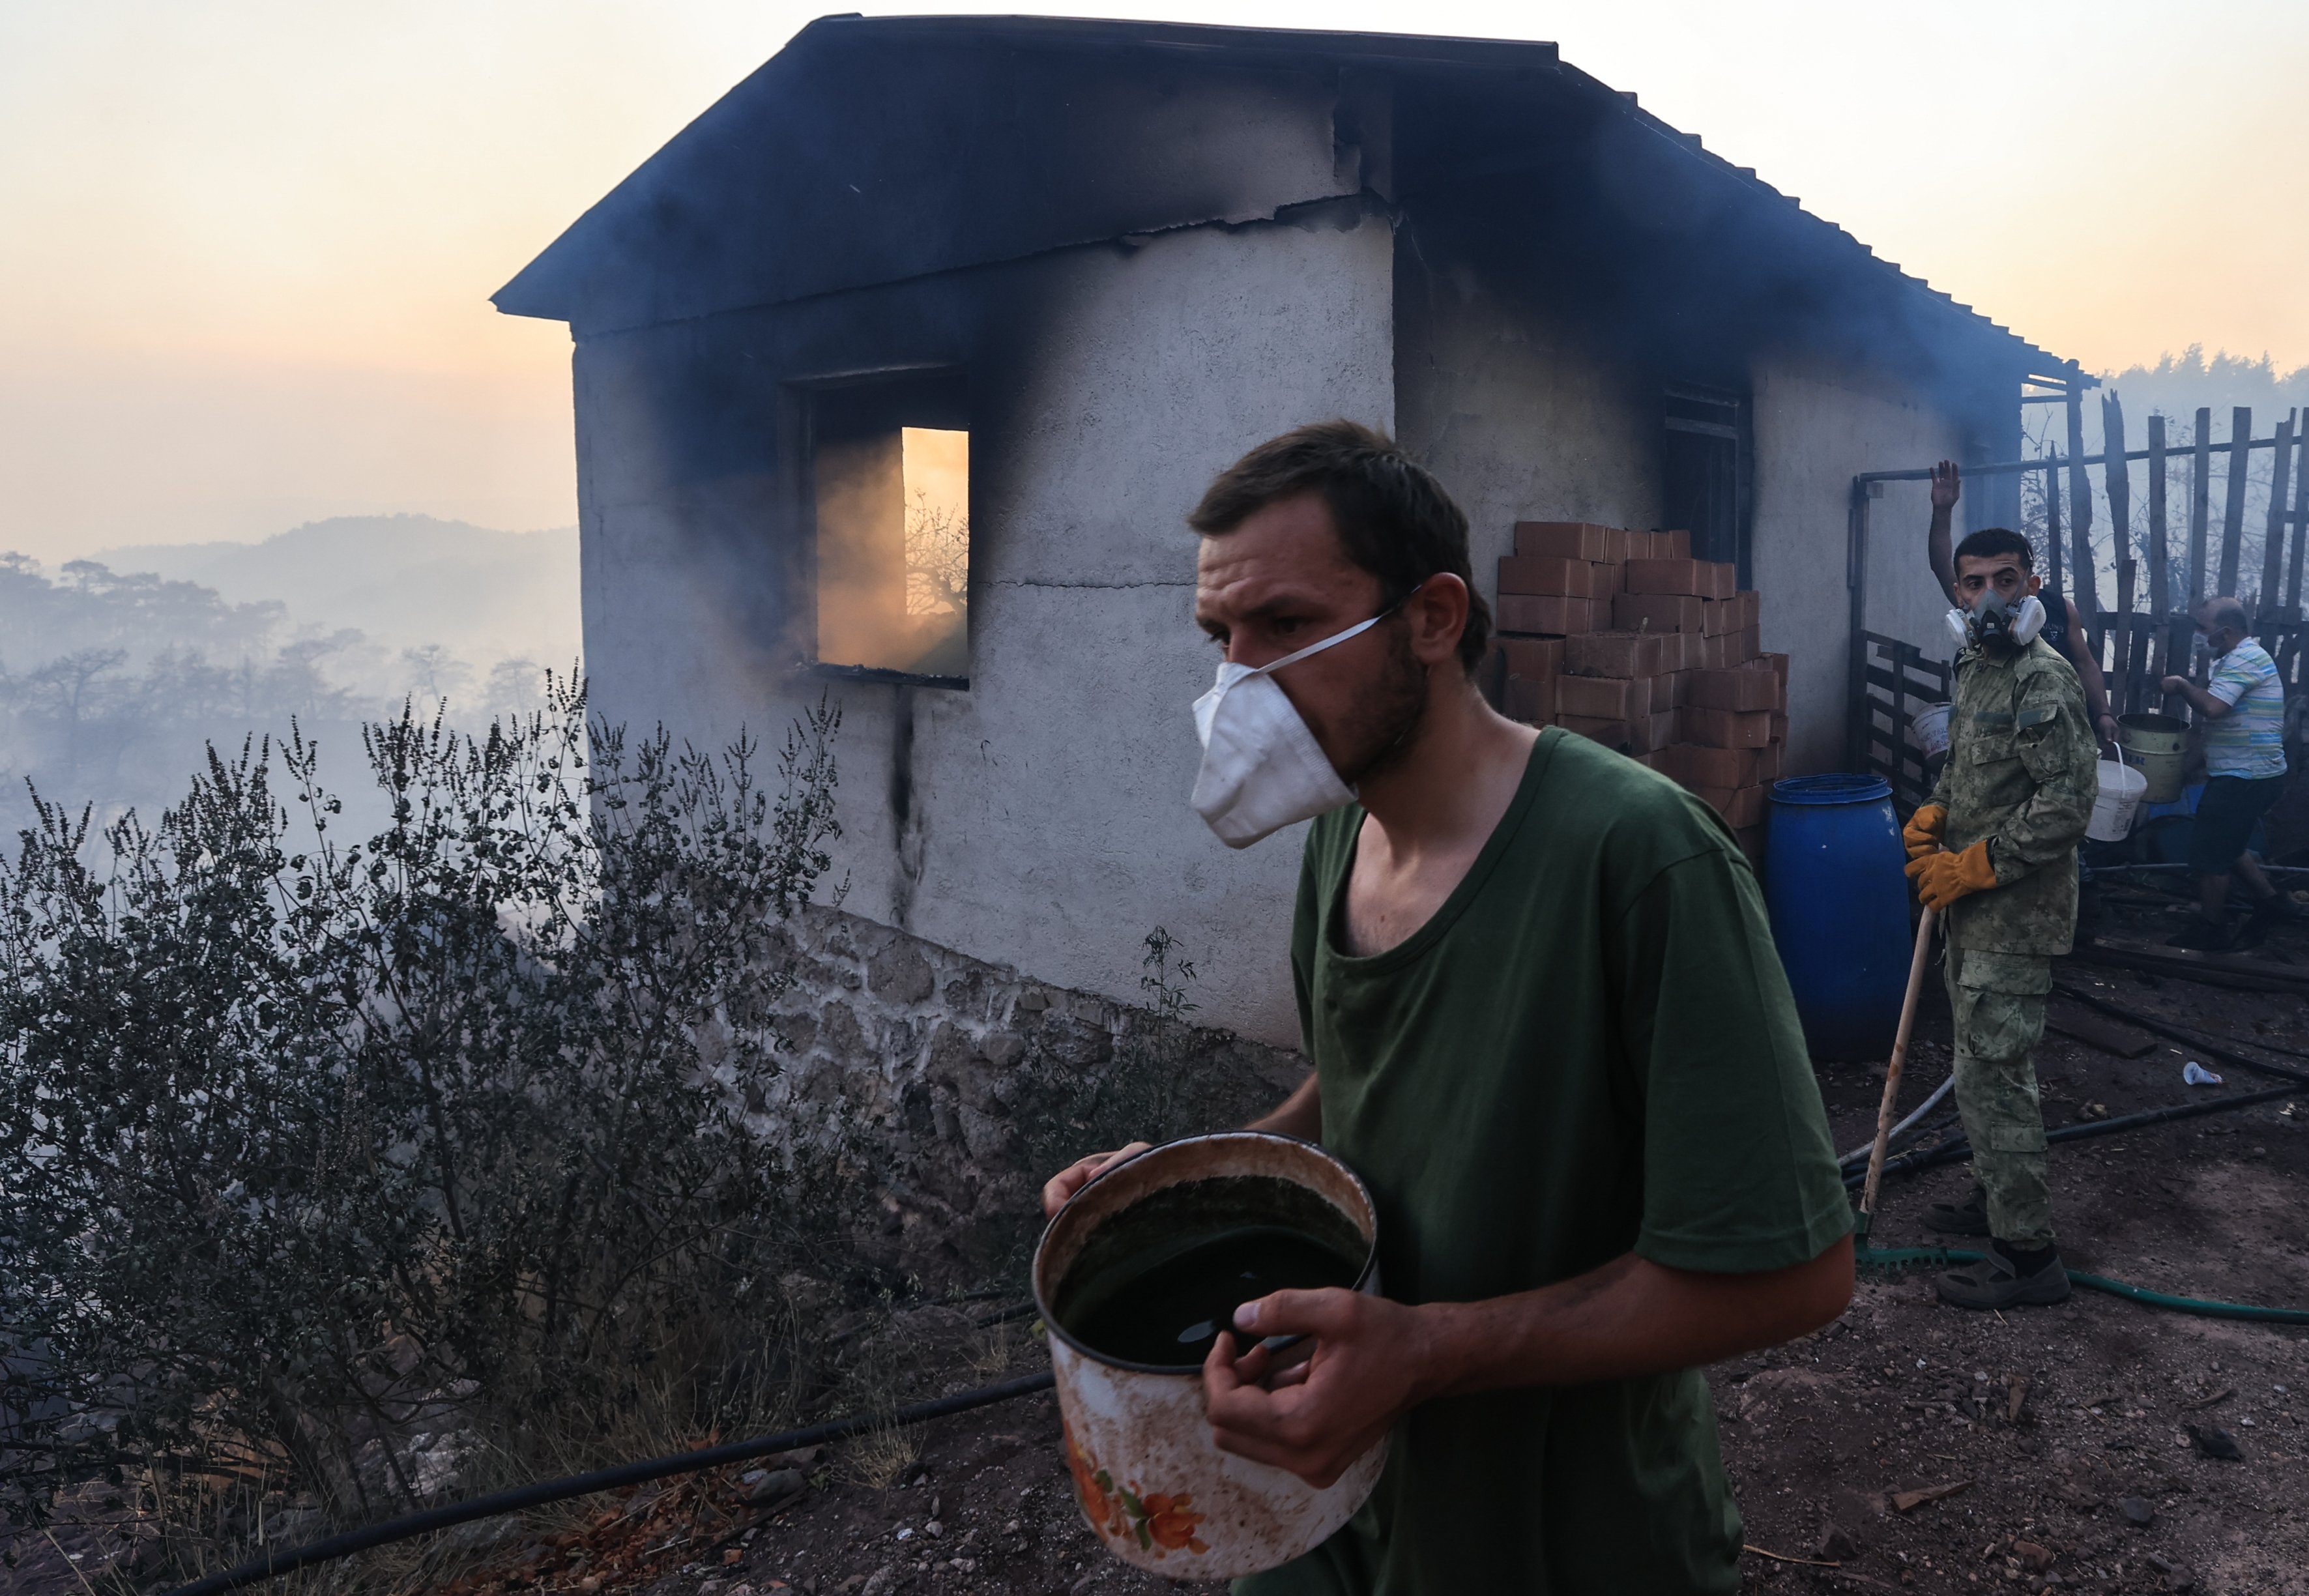 Turkeyâs fight against forest fires continues at full pace